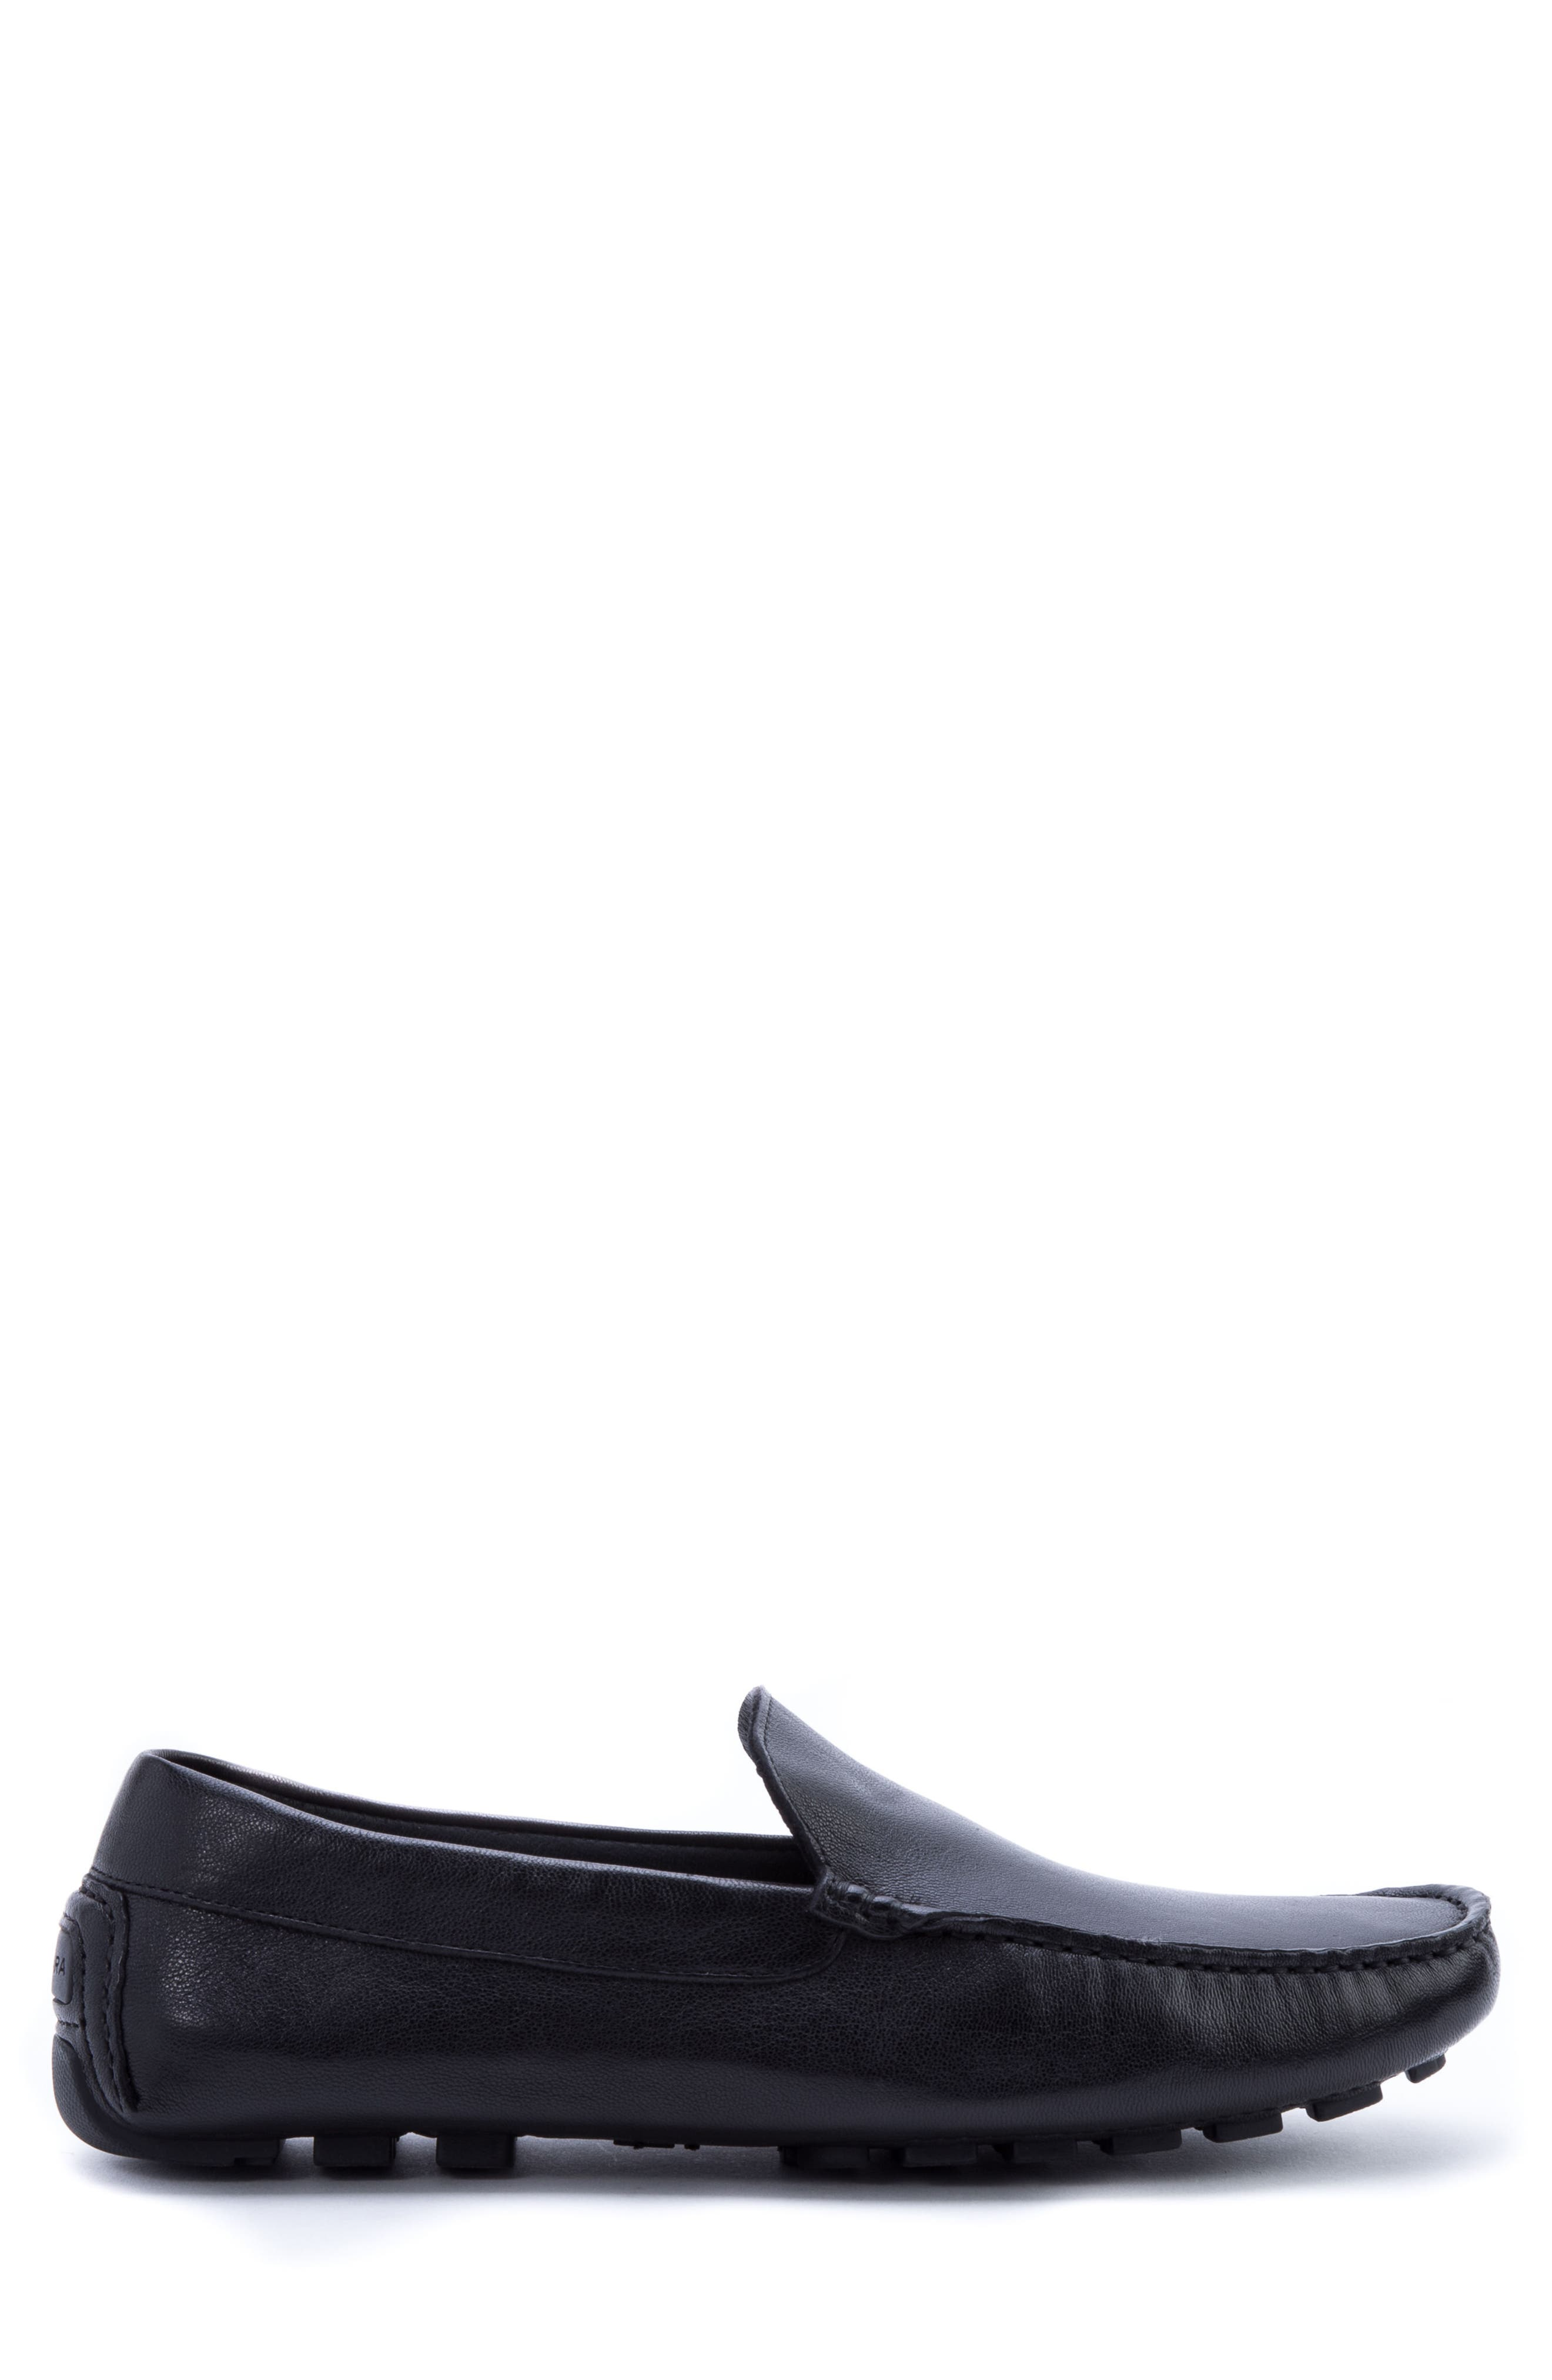 Picasso 3 Moc Toe Driving Loafer,                             Alternate thumbnail 3, color,                             BLACK LEATHER